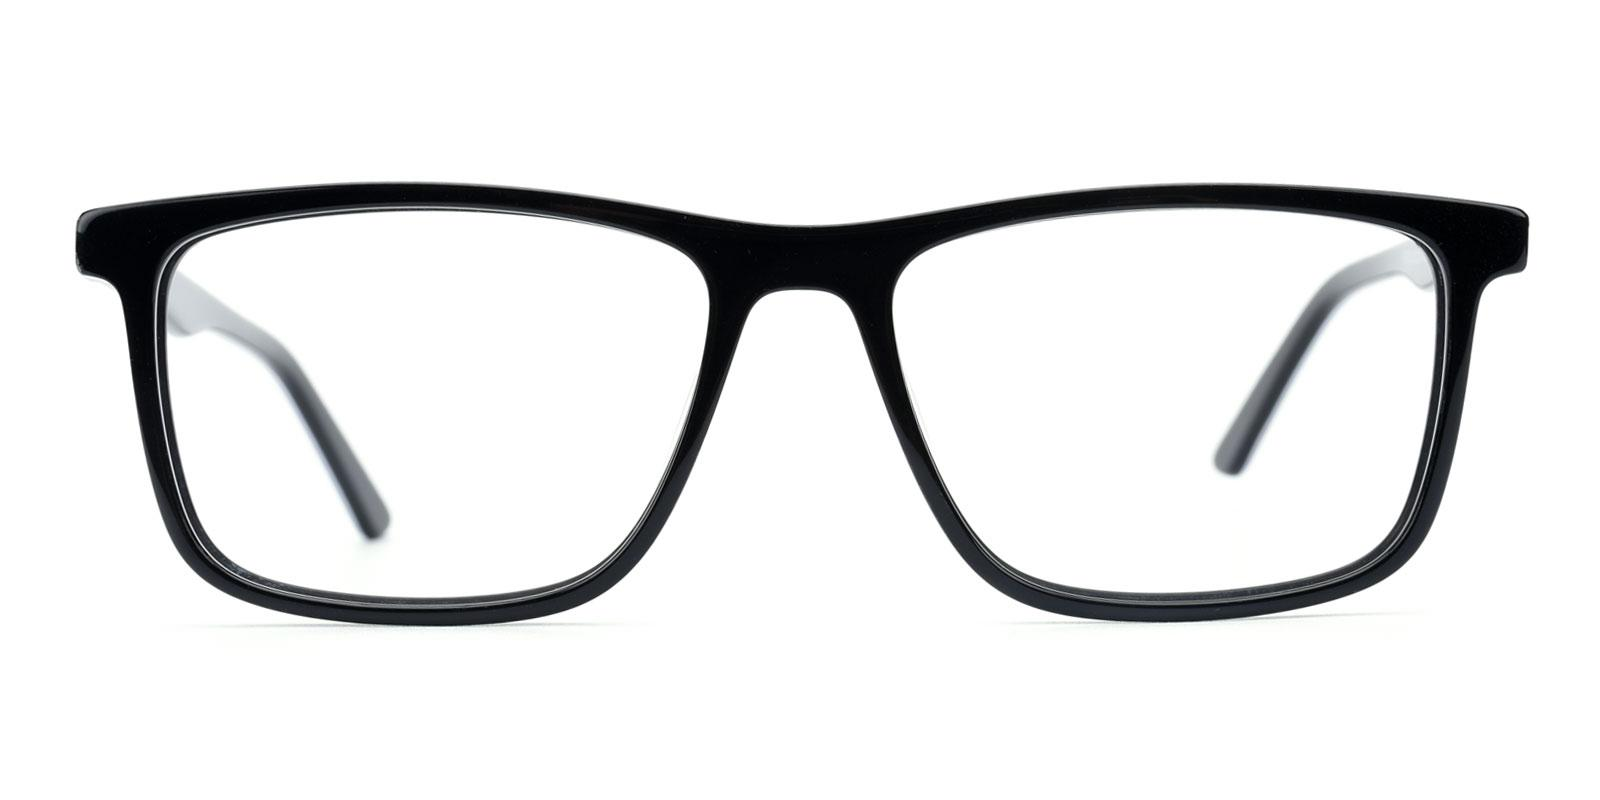 Tripper-White-Square-Acetate-Eyeglasses-additional2